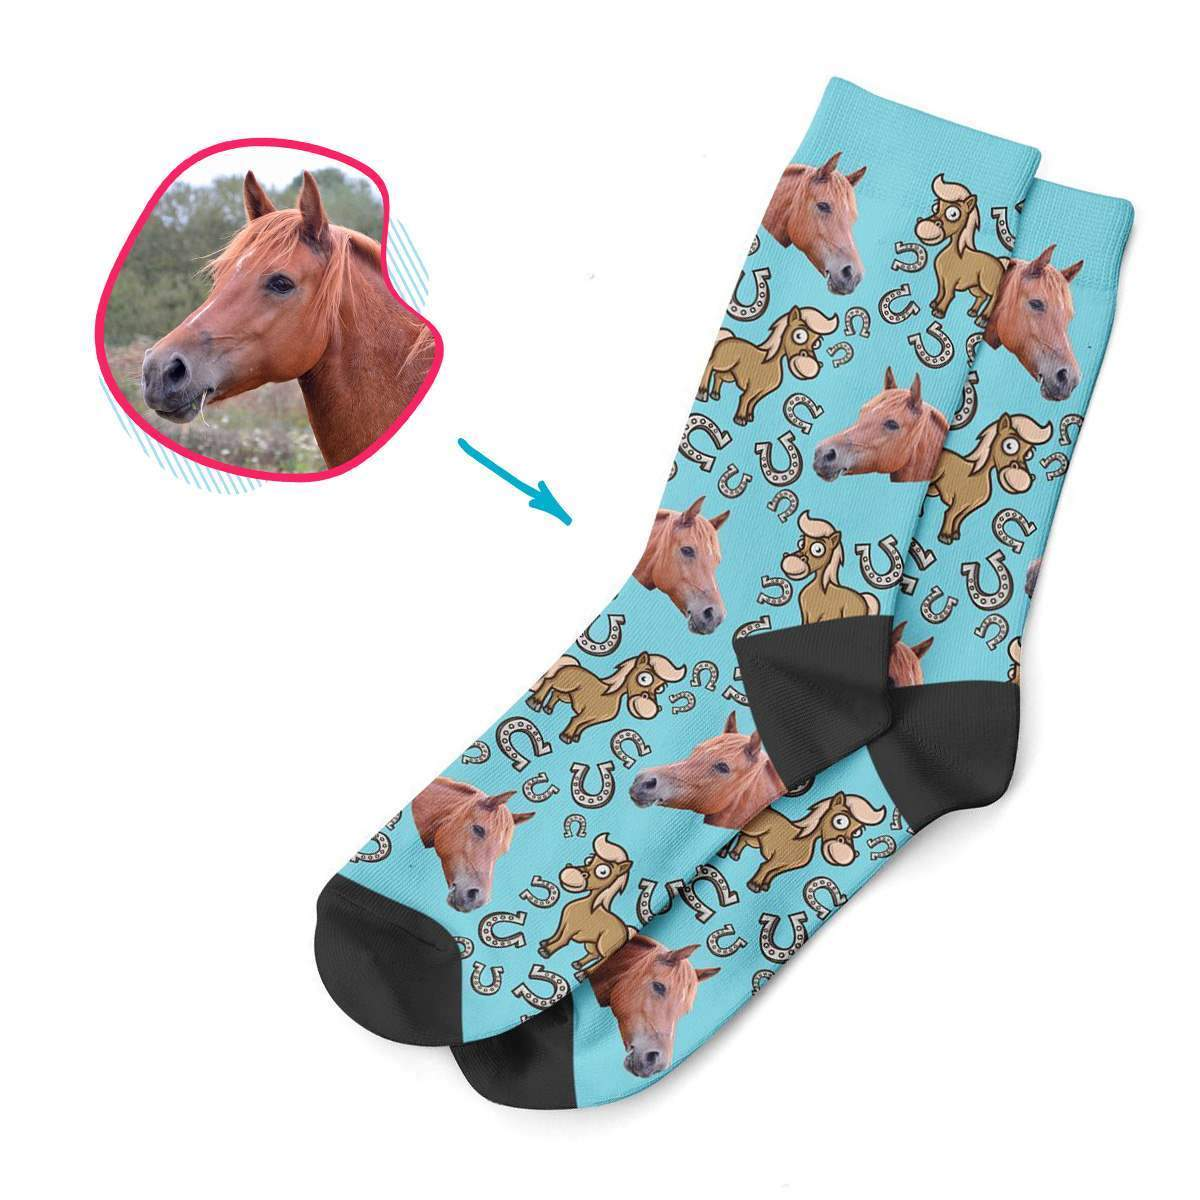 blue Horse socks personalized with photo of face printed on them